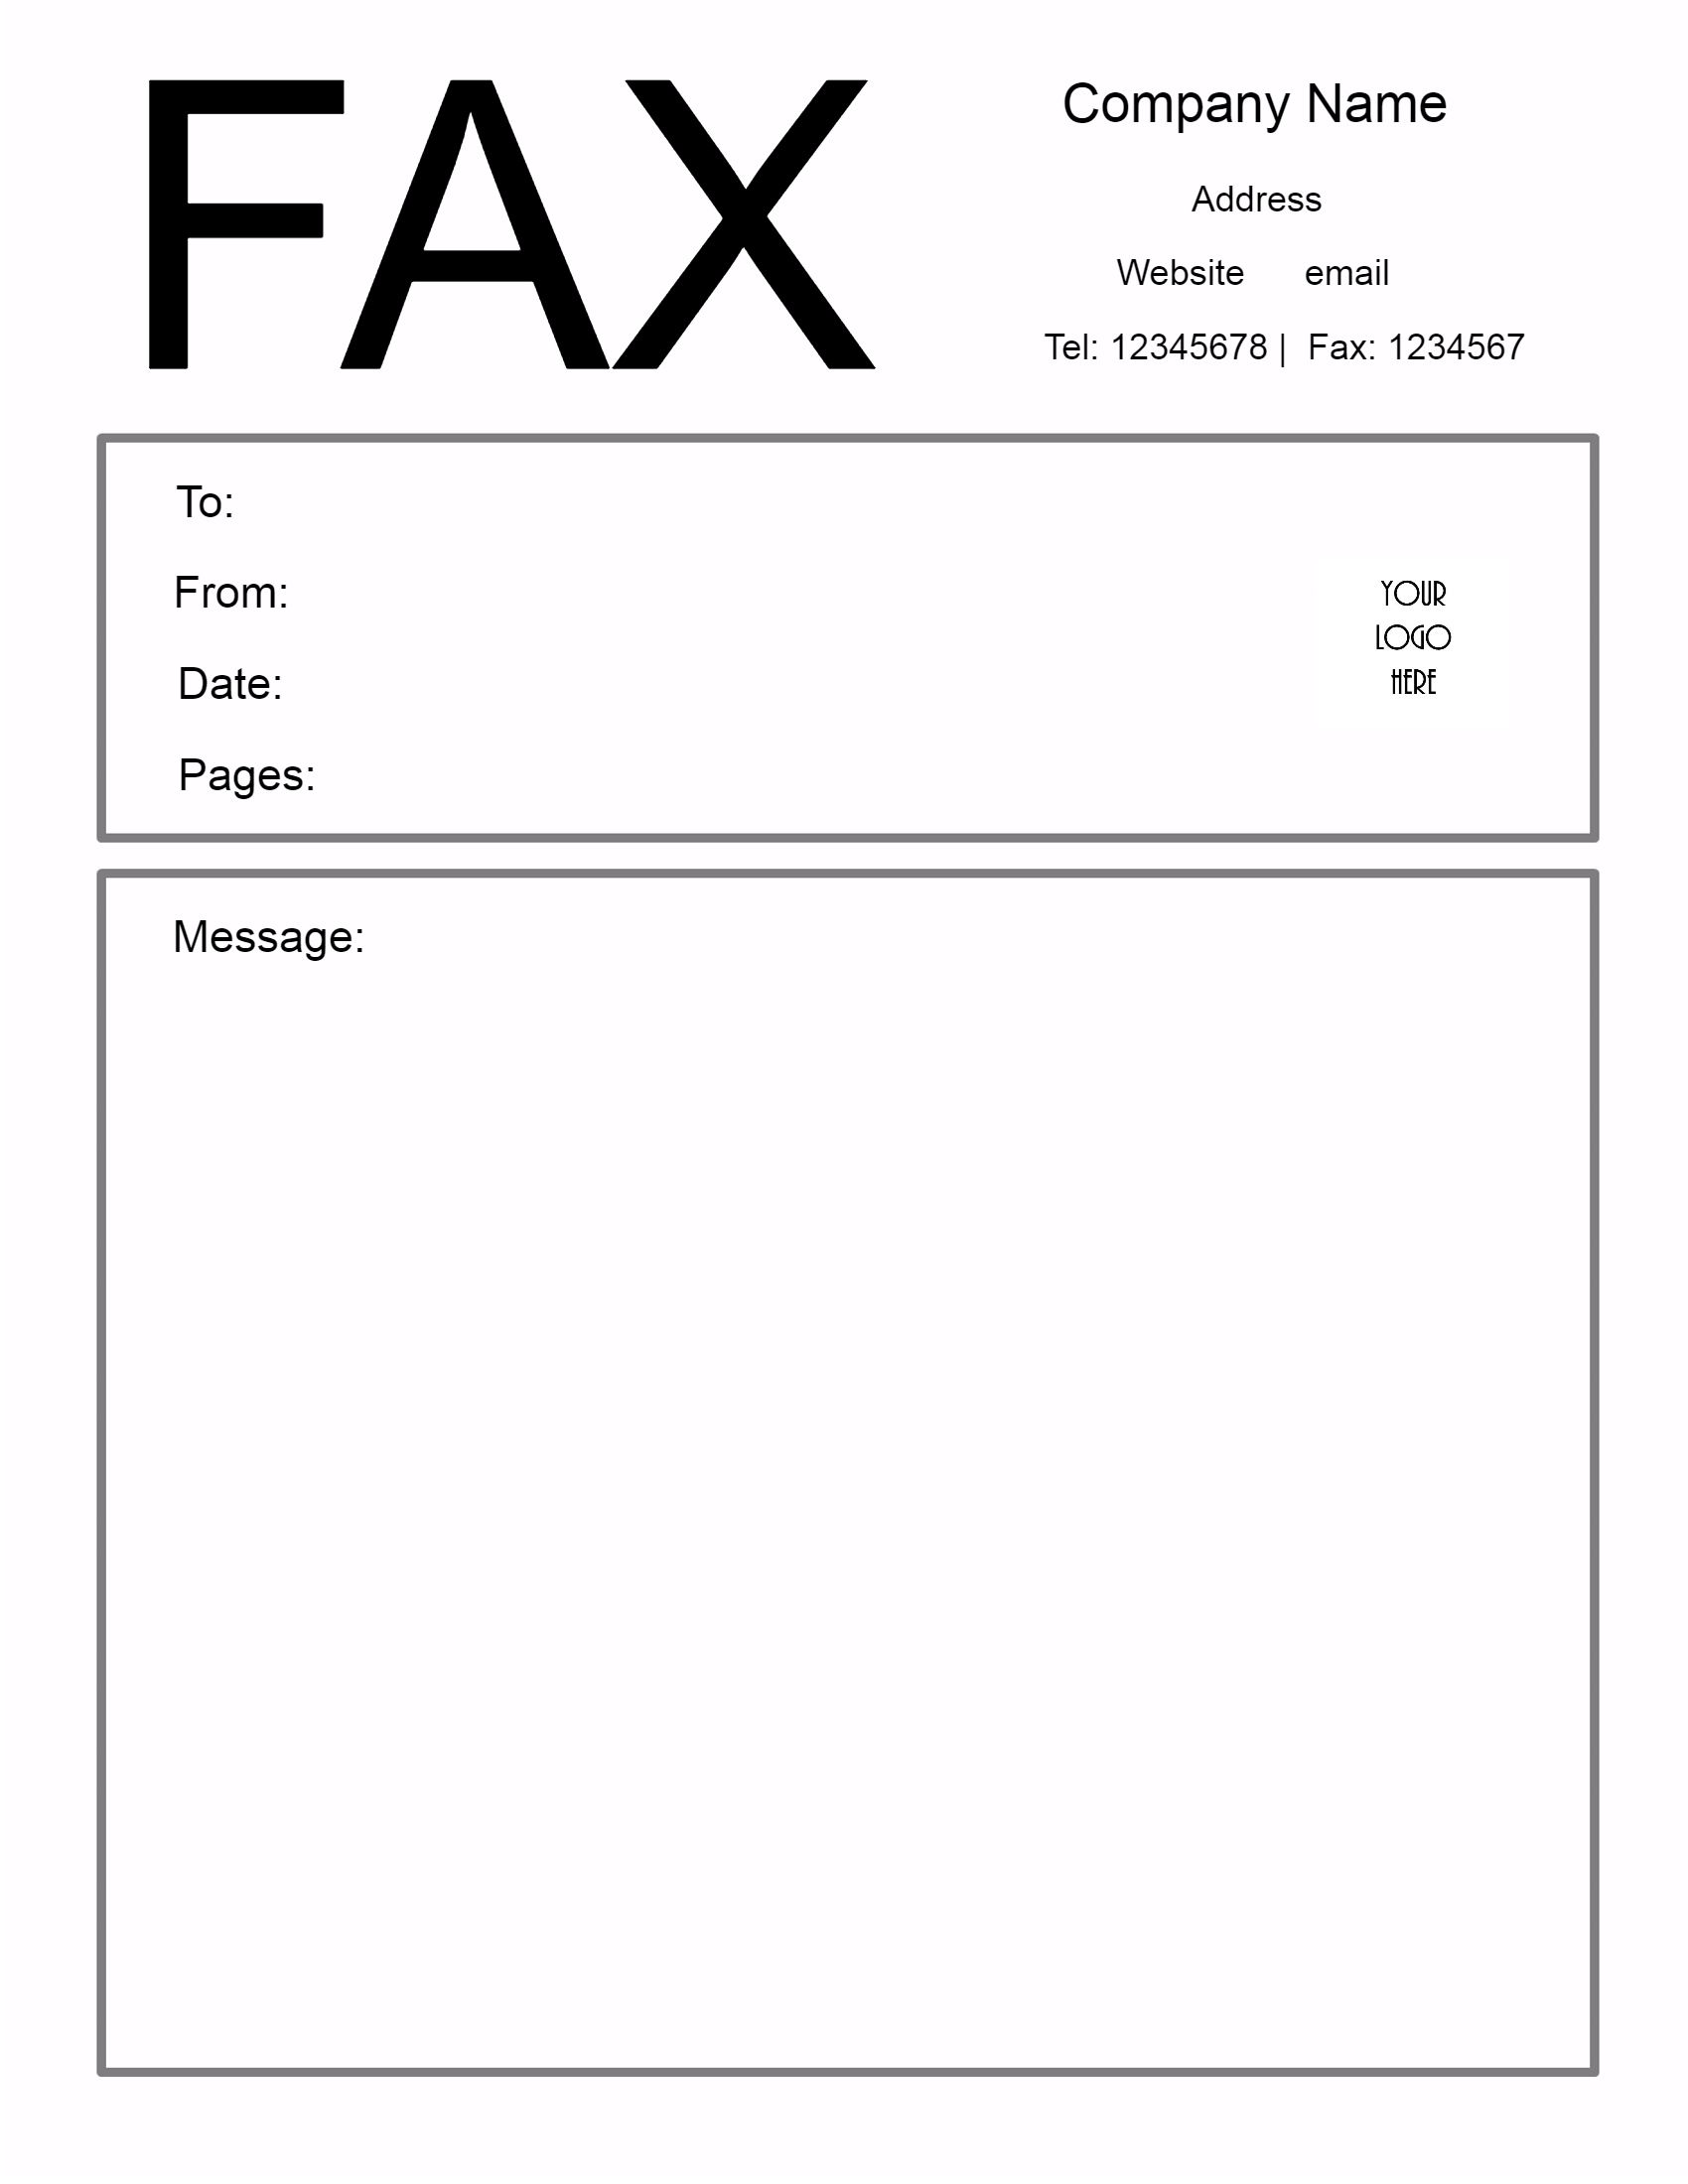 sample fax cover sheet - Examples Of Fax Cover Letters